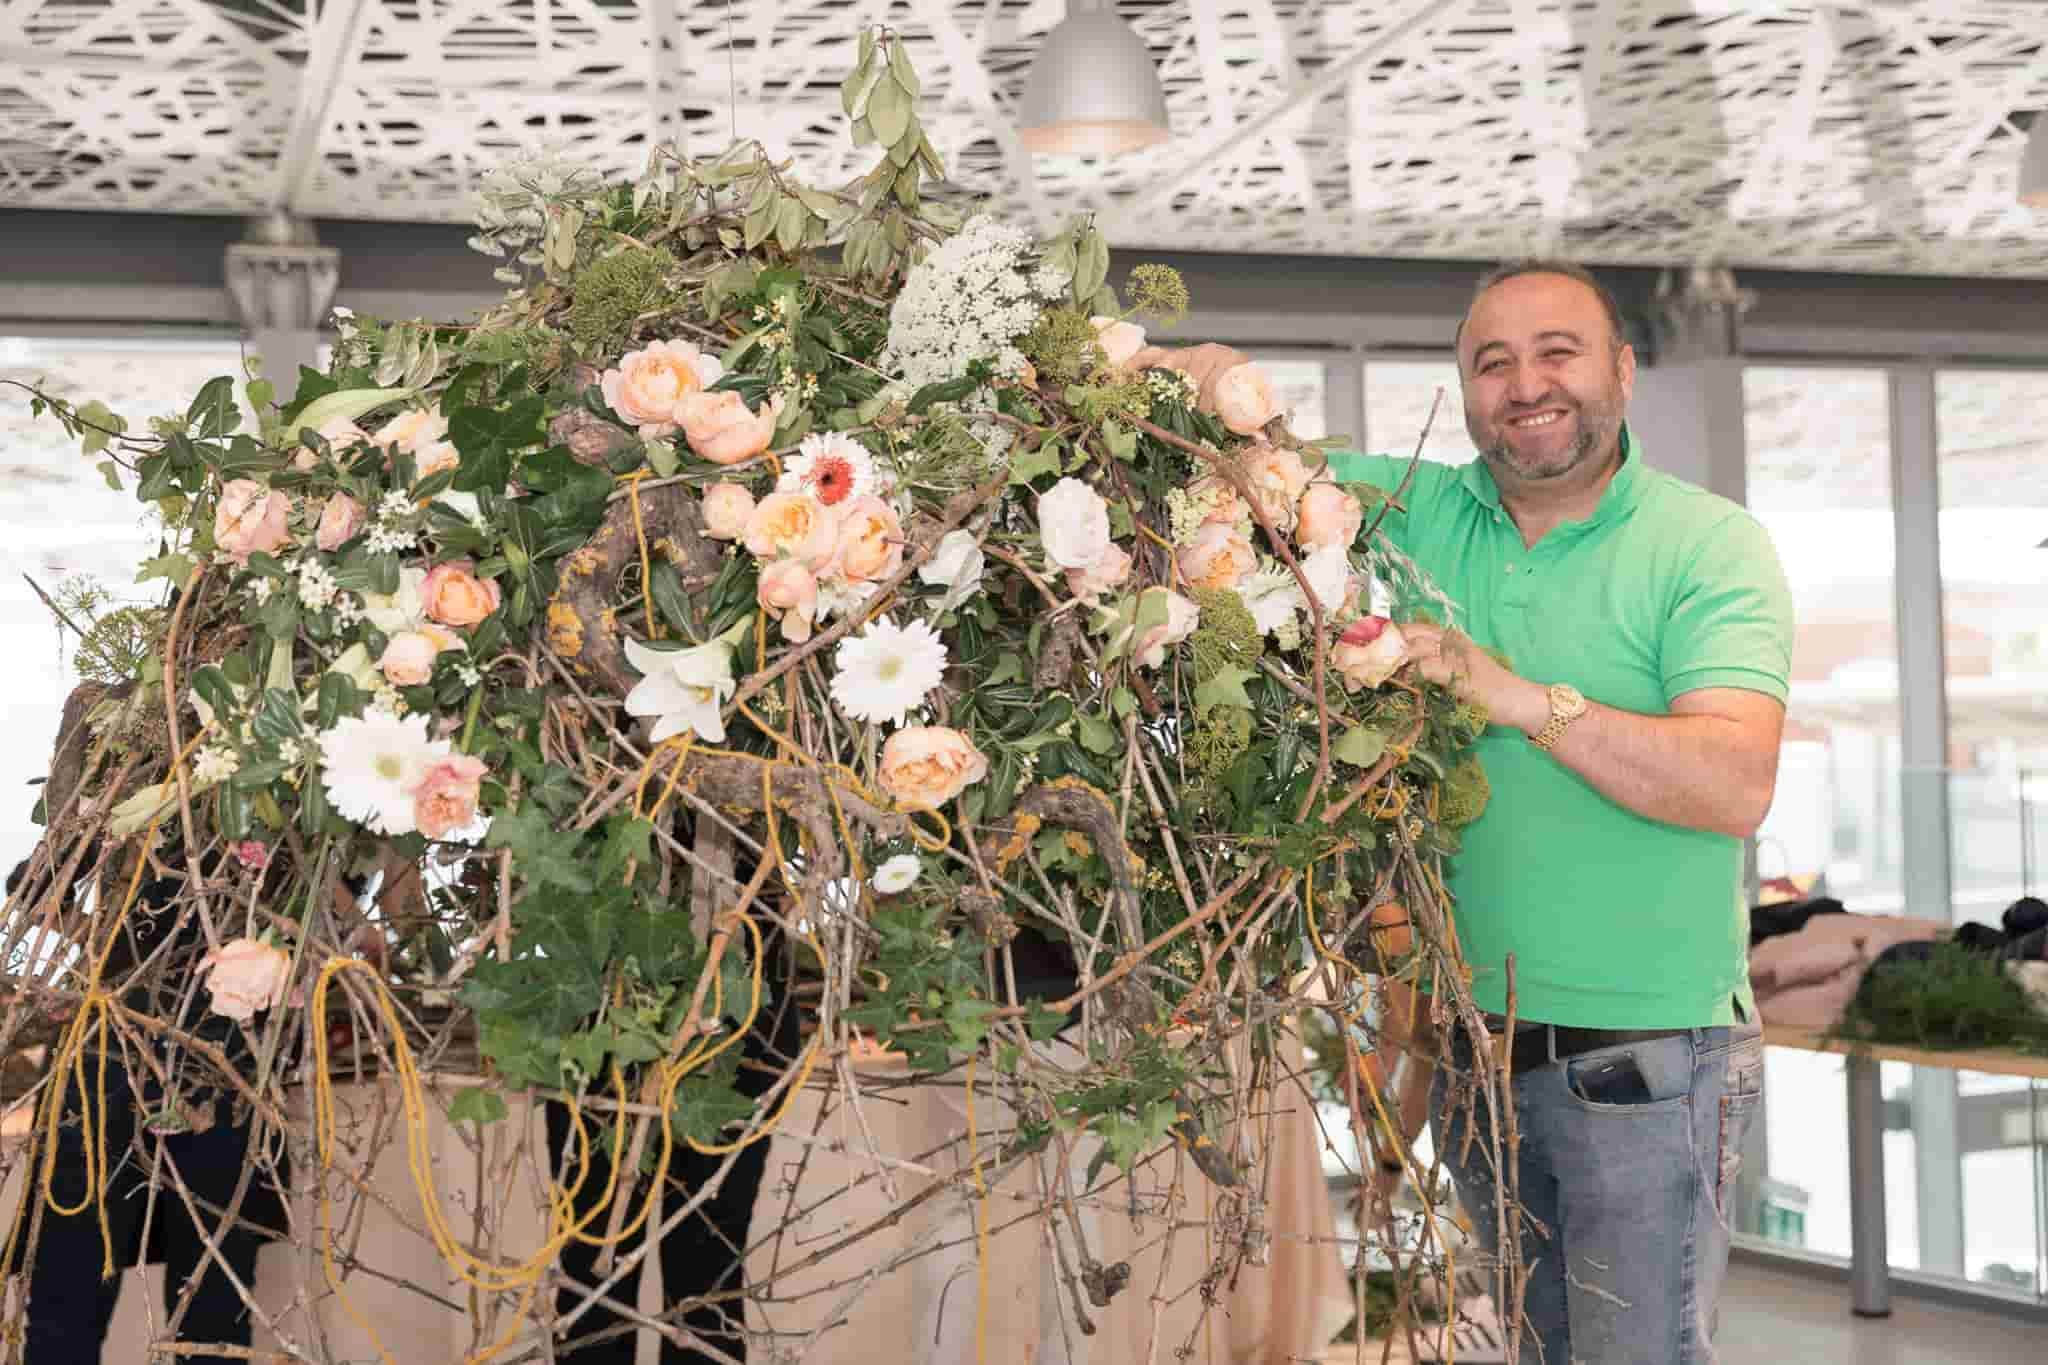 Meet the flower arranging masters of the world